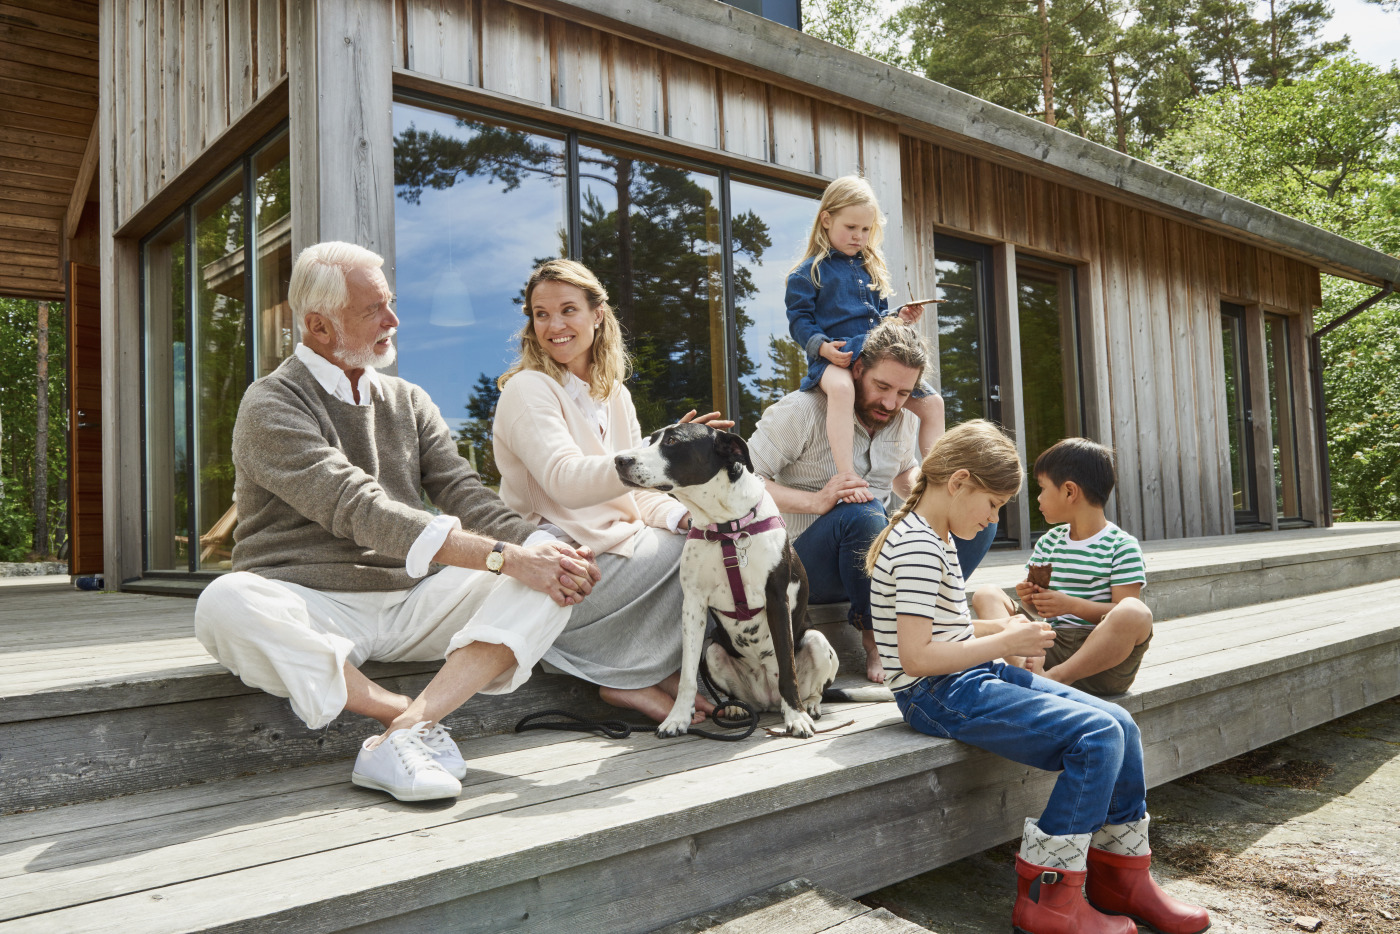 Finnish dairy innovation helps food manufacturers to cater to the needs of ageing adults